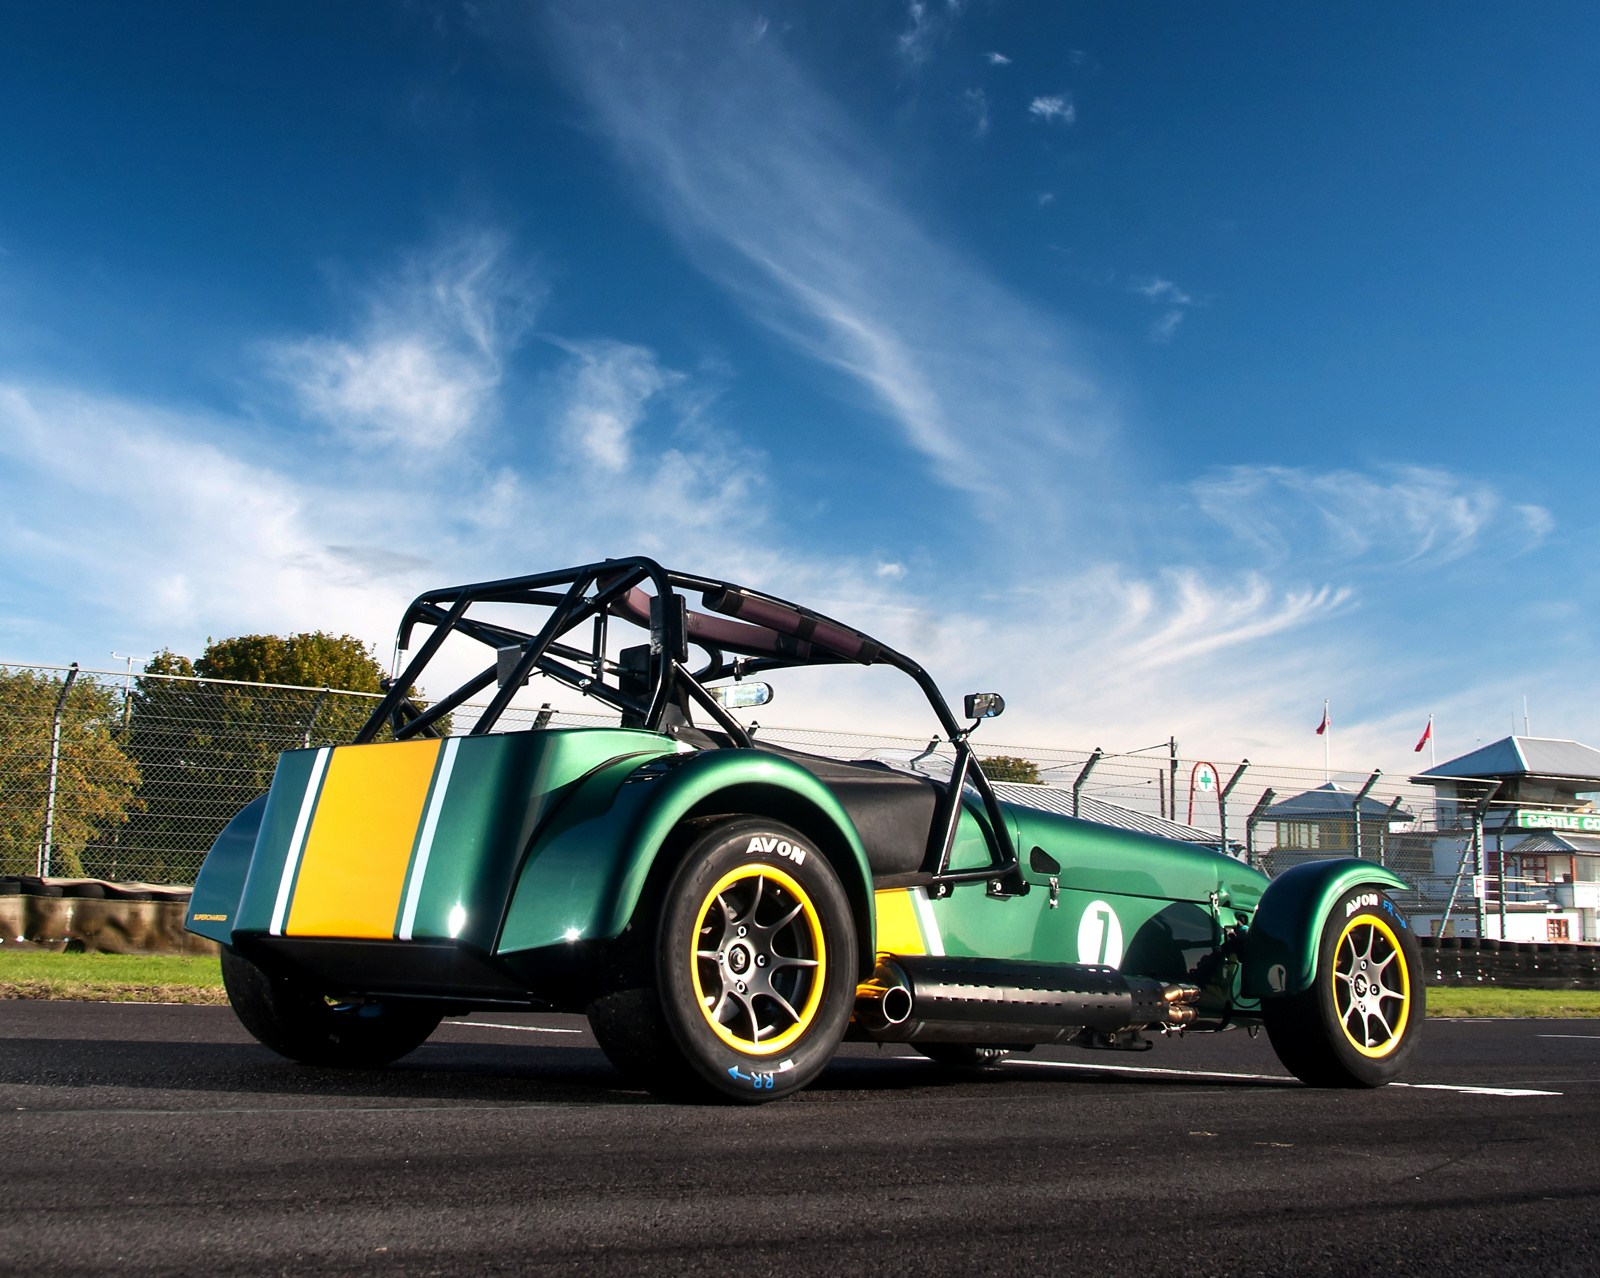 Caterham Superlight R600 - Autoblog.gr